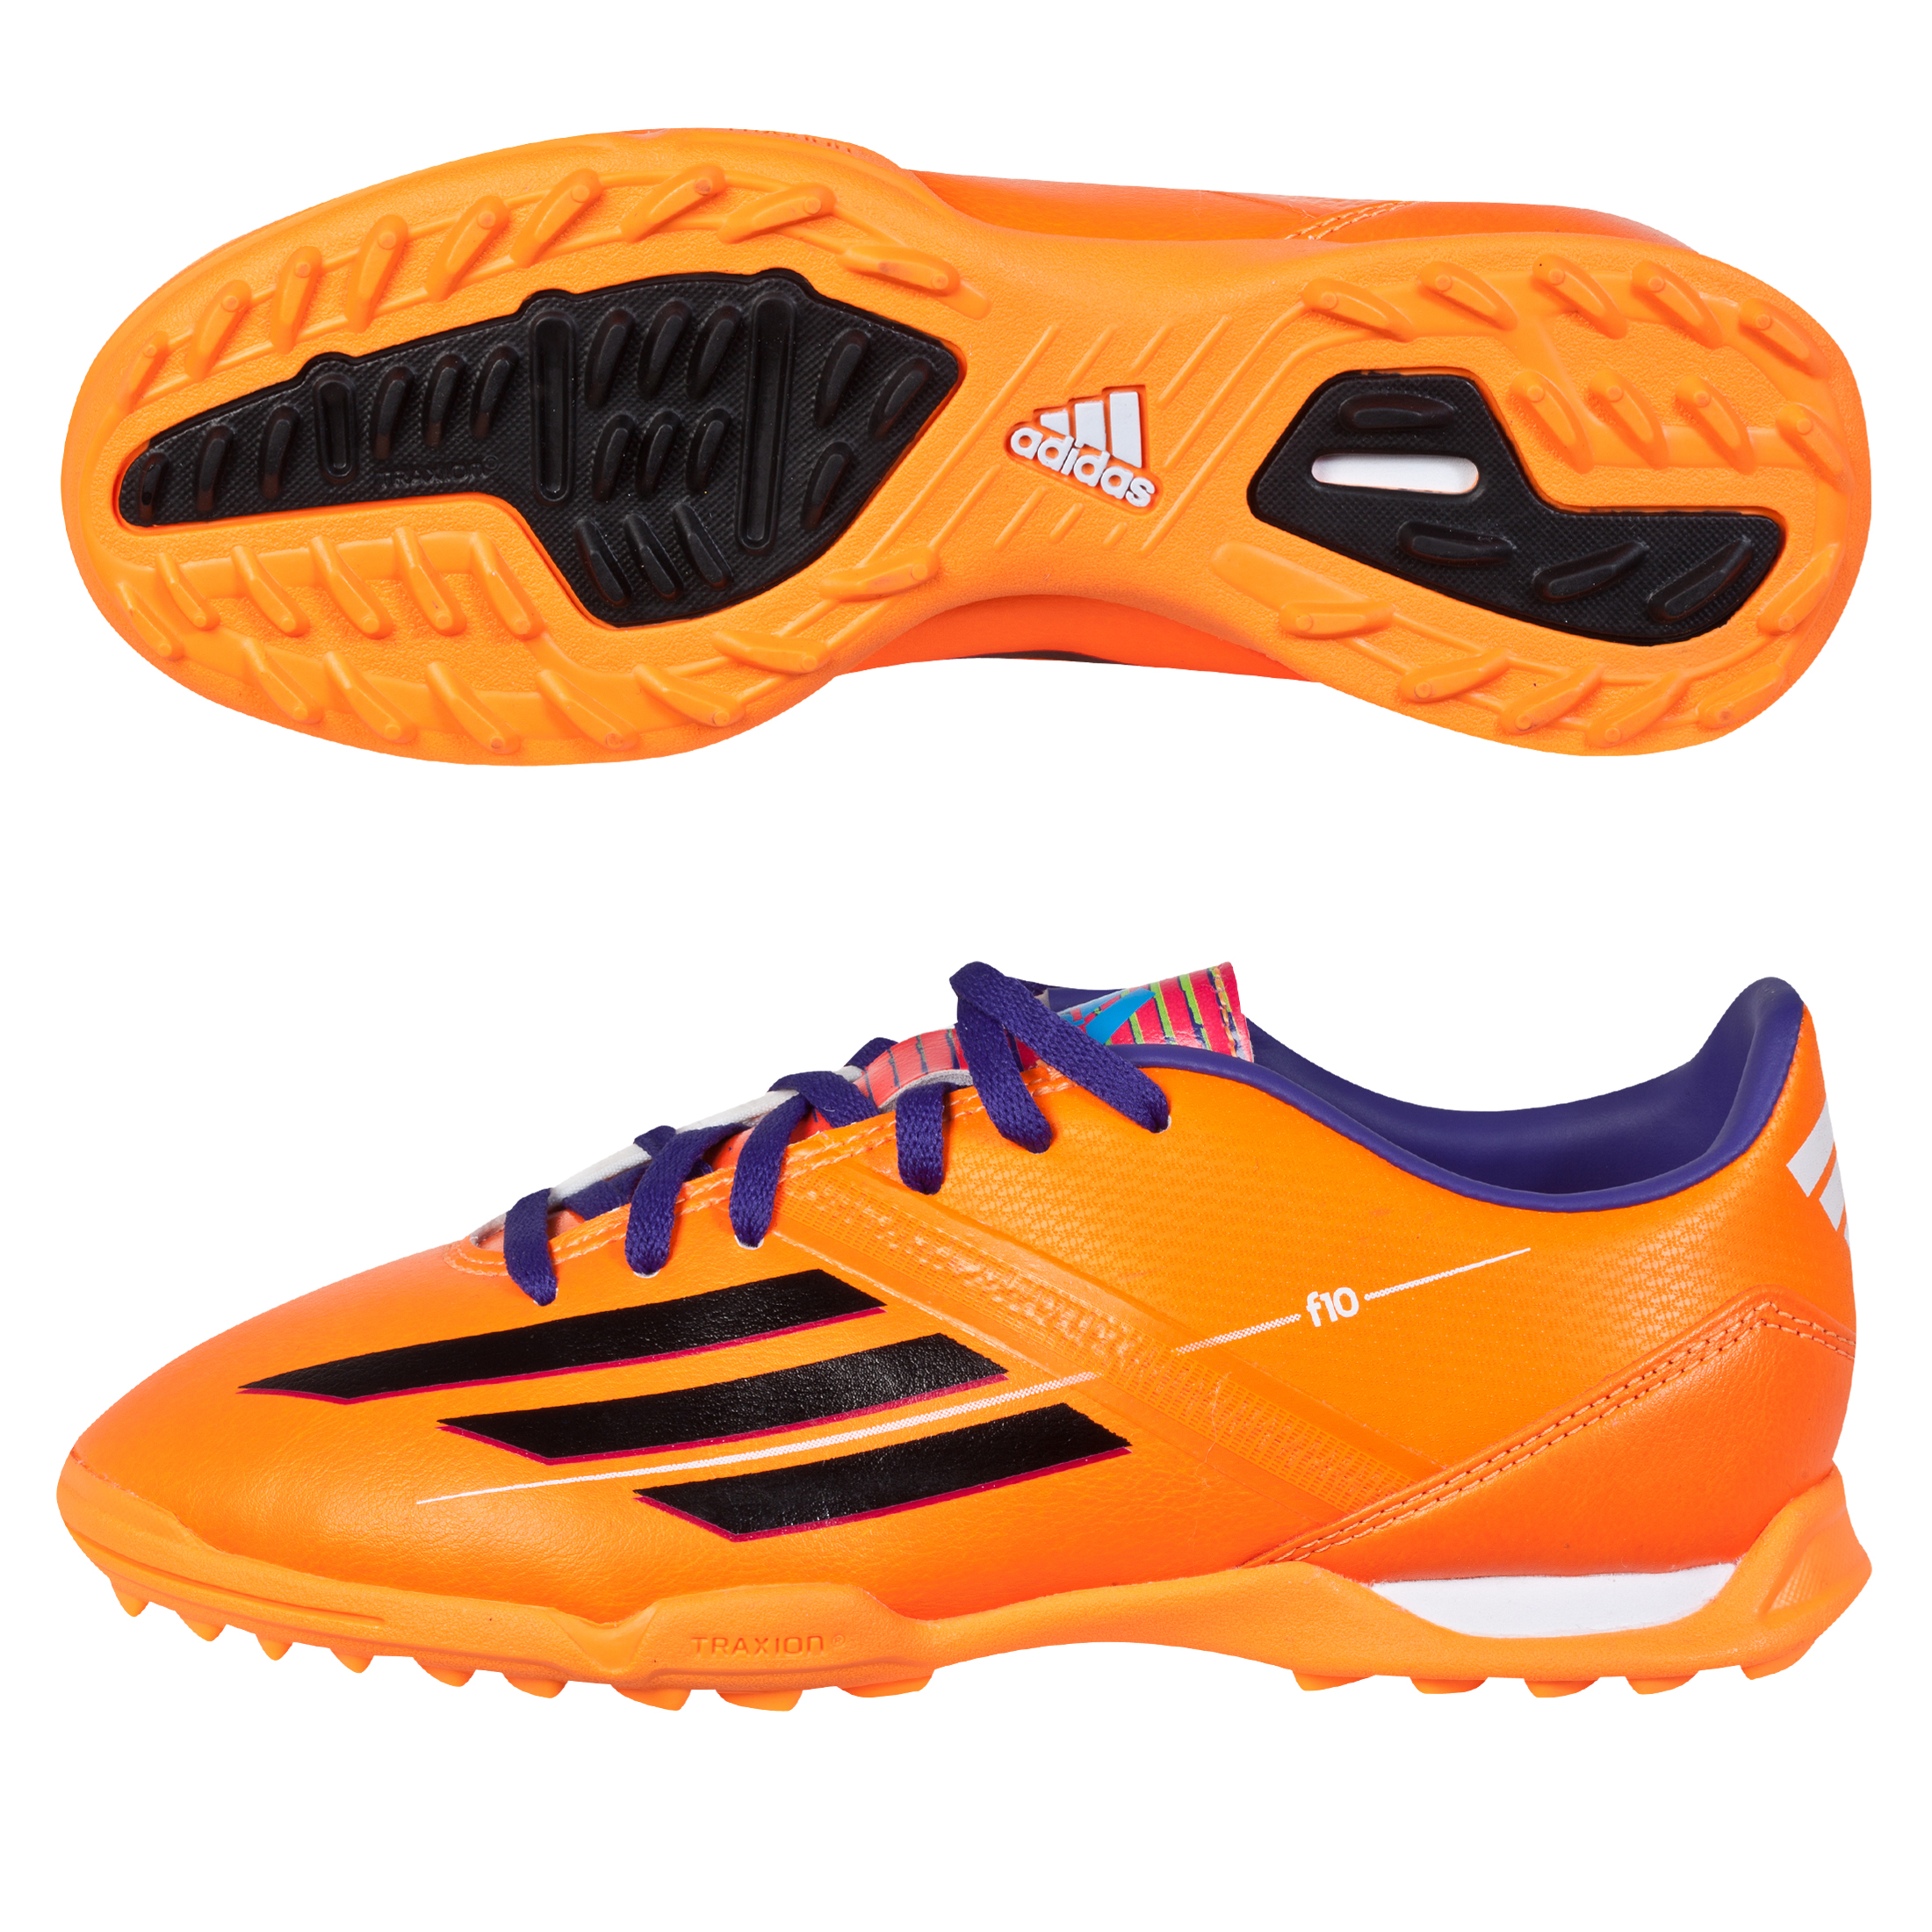 Adidas F10 TRX Astroturf Trainers - Kids Orange